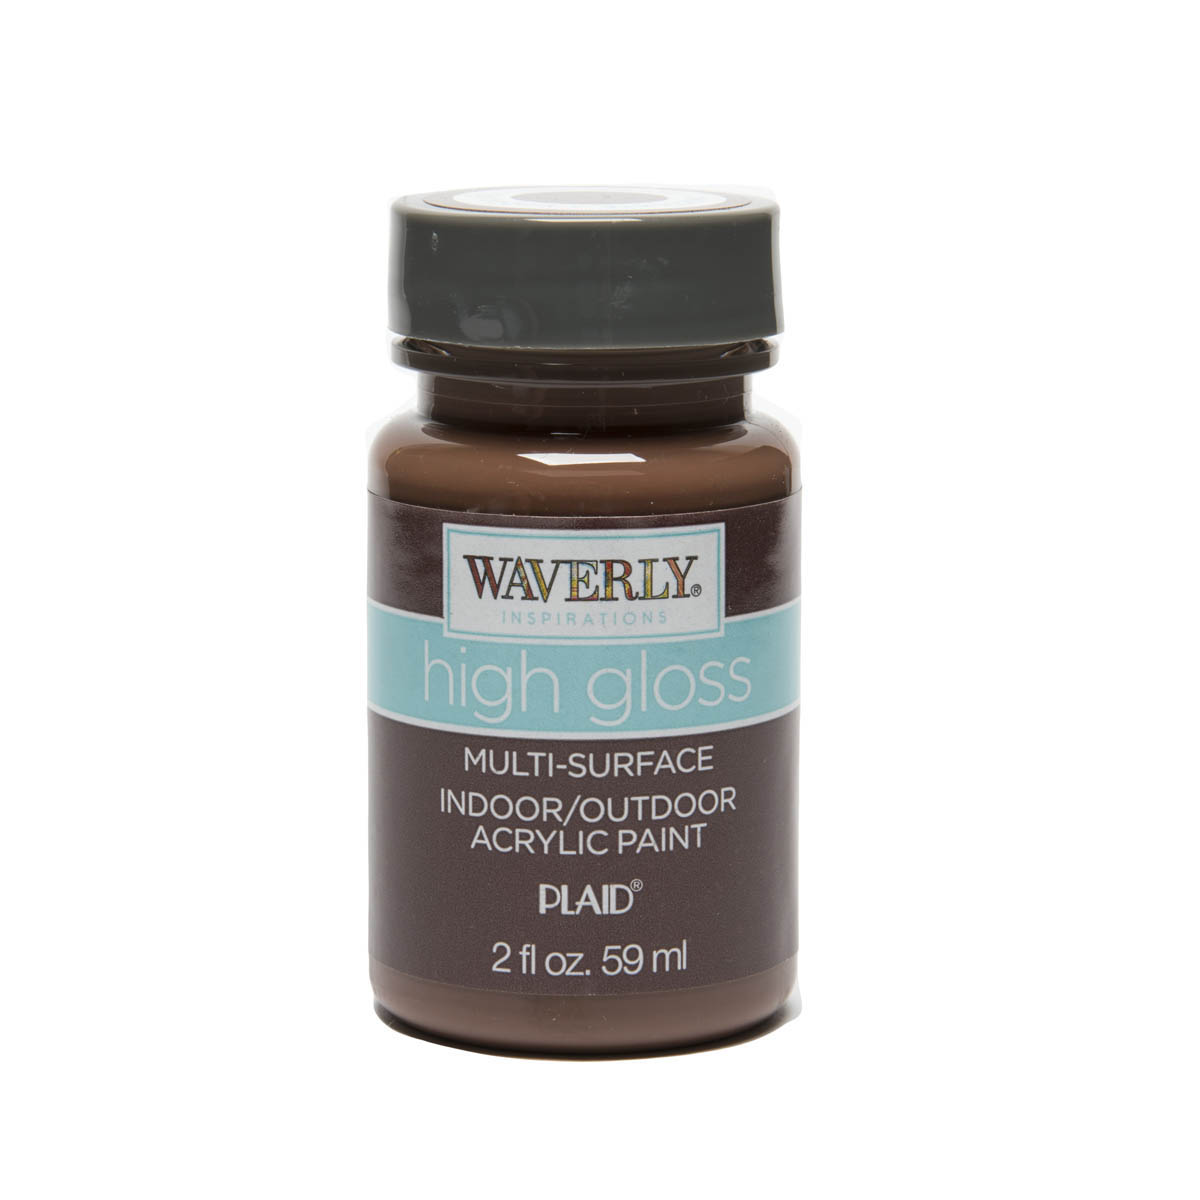 Waverly ® Inspirations High Gloss Multi-Surface Acrylic Paint - Chocolate, 2 oz. - 60692E